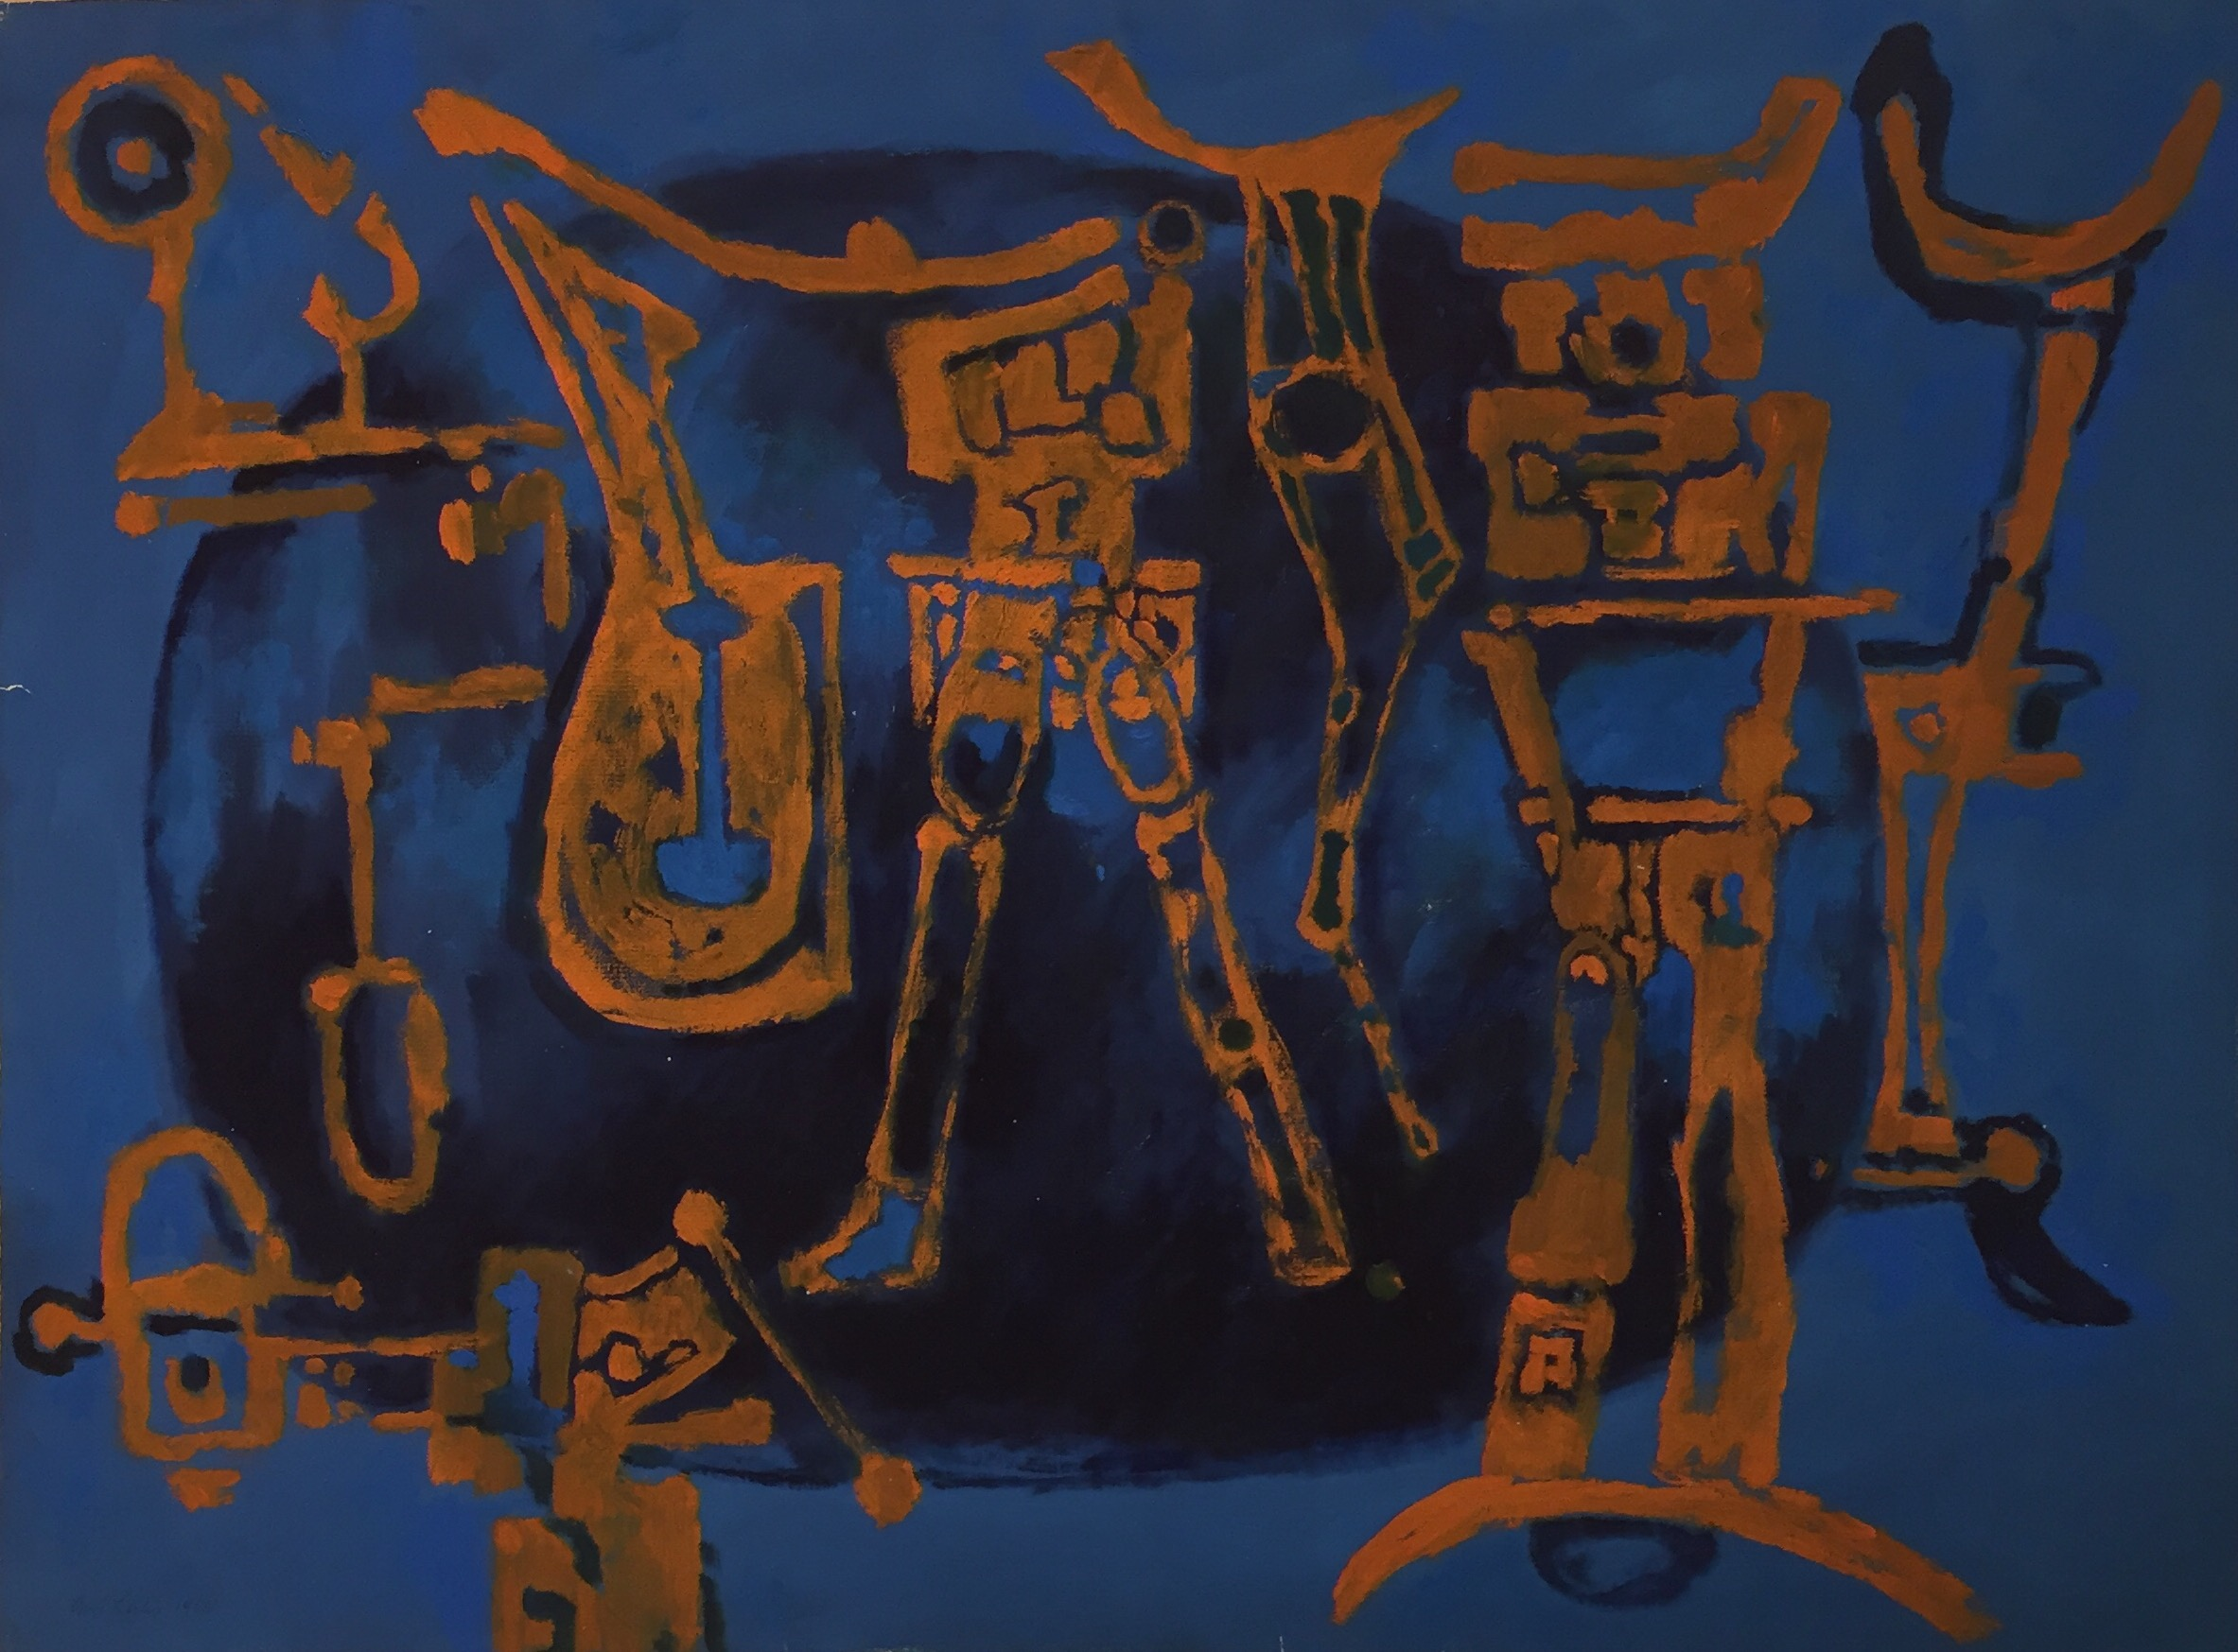 Curt Lahs | Bright Signs | 1955 | tempera on paper | signed and dated | 47.4 x 62.5 cm